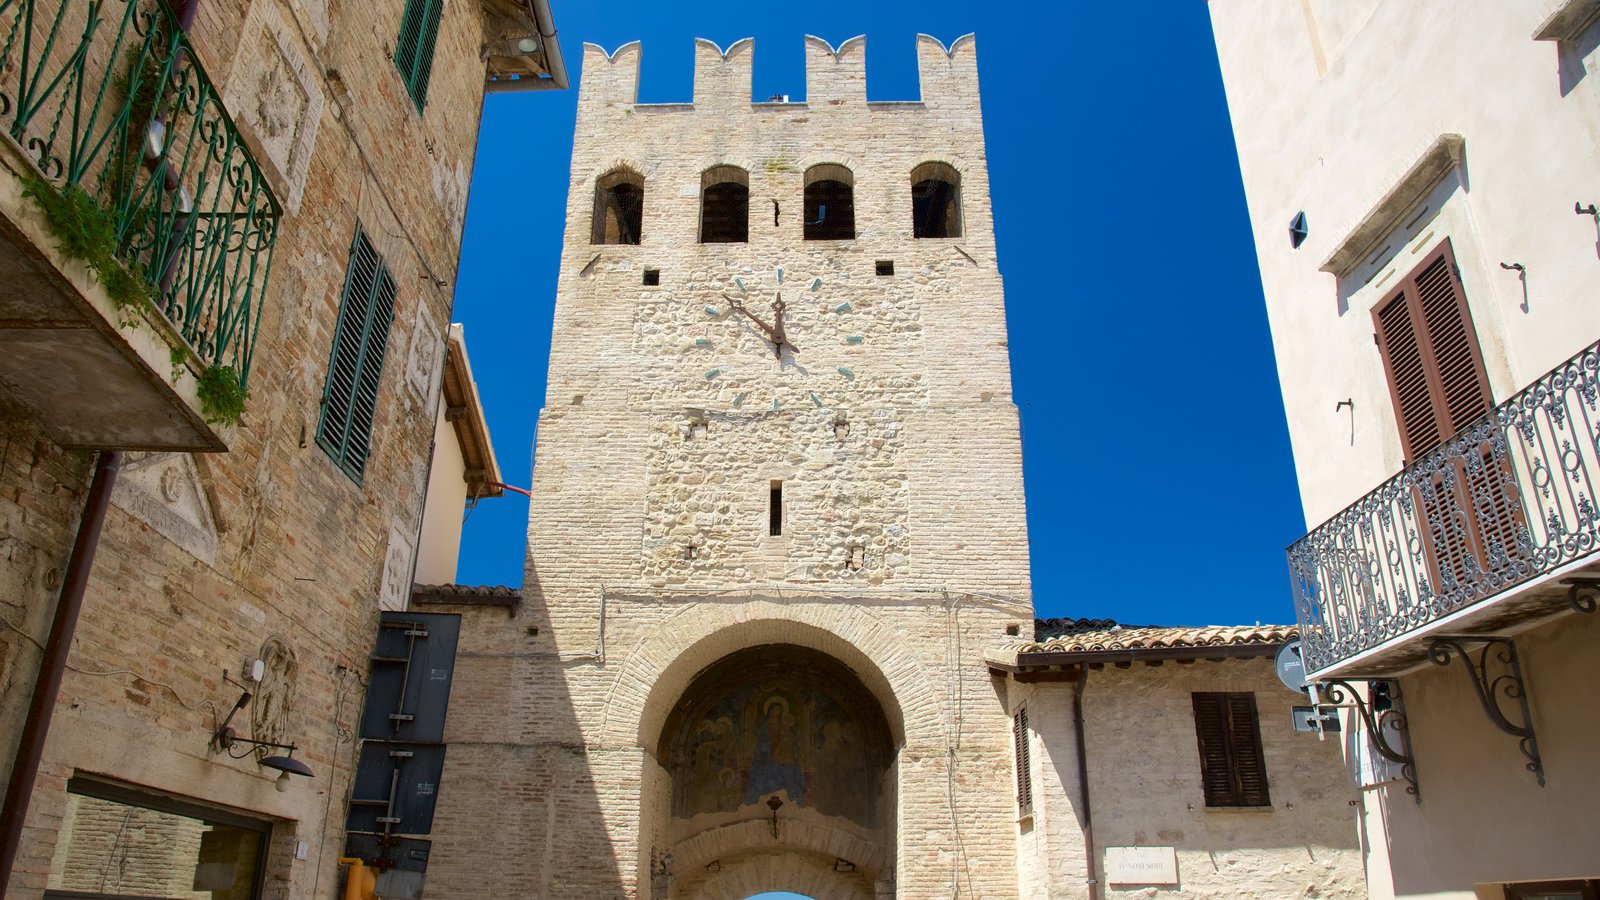 Montefalco showing heritage architecture